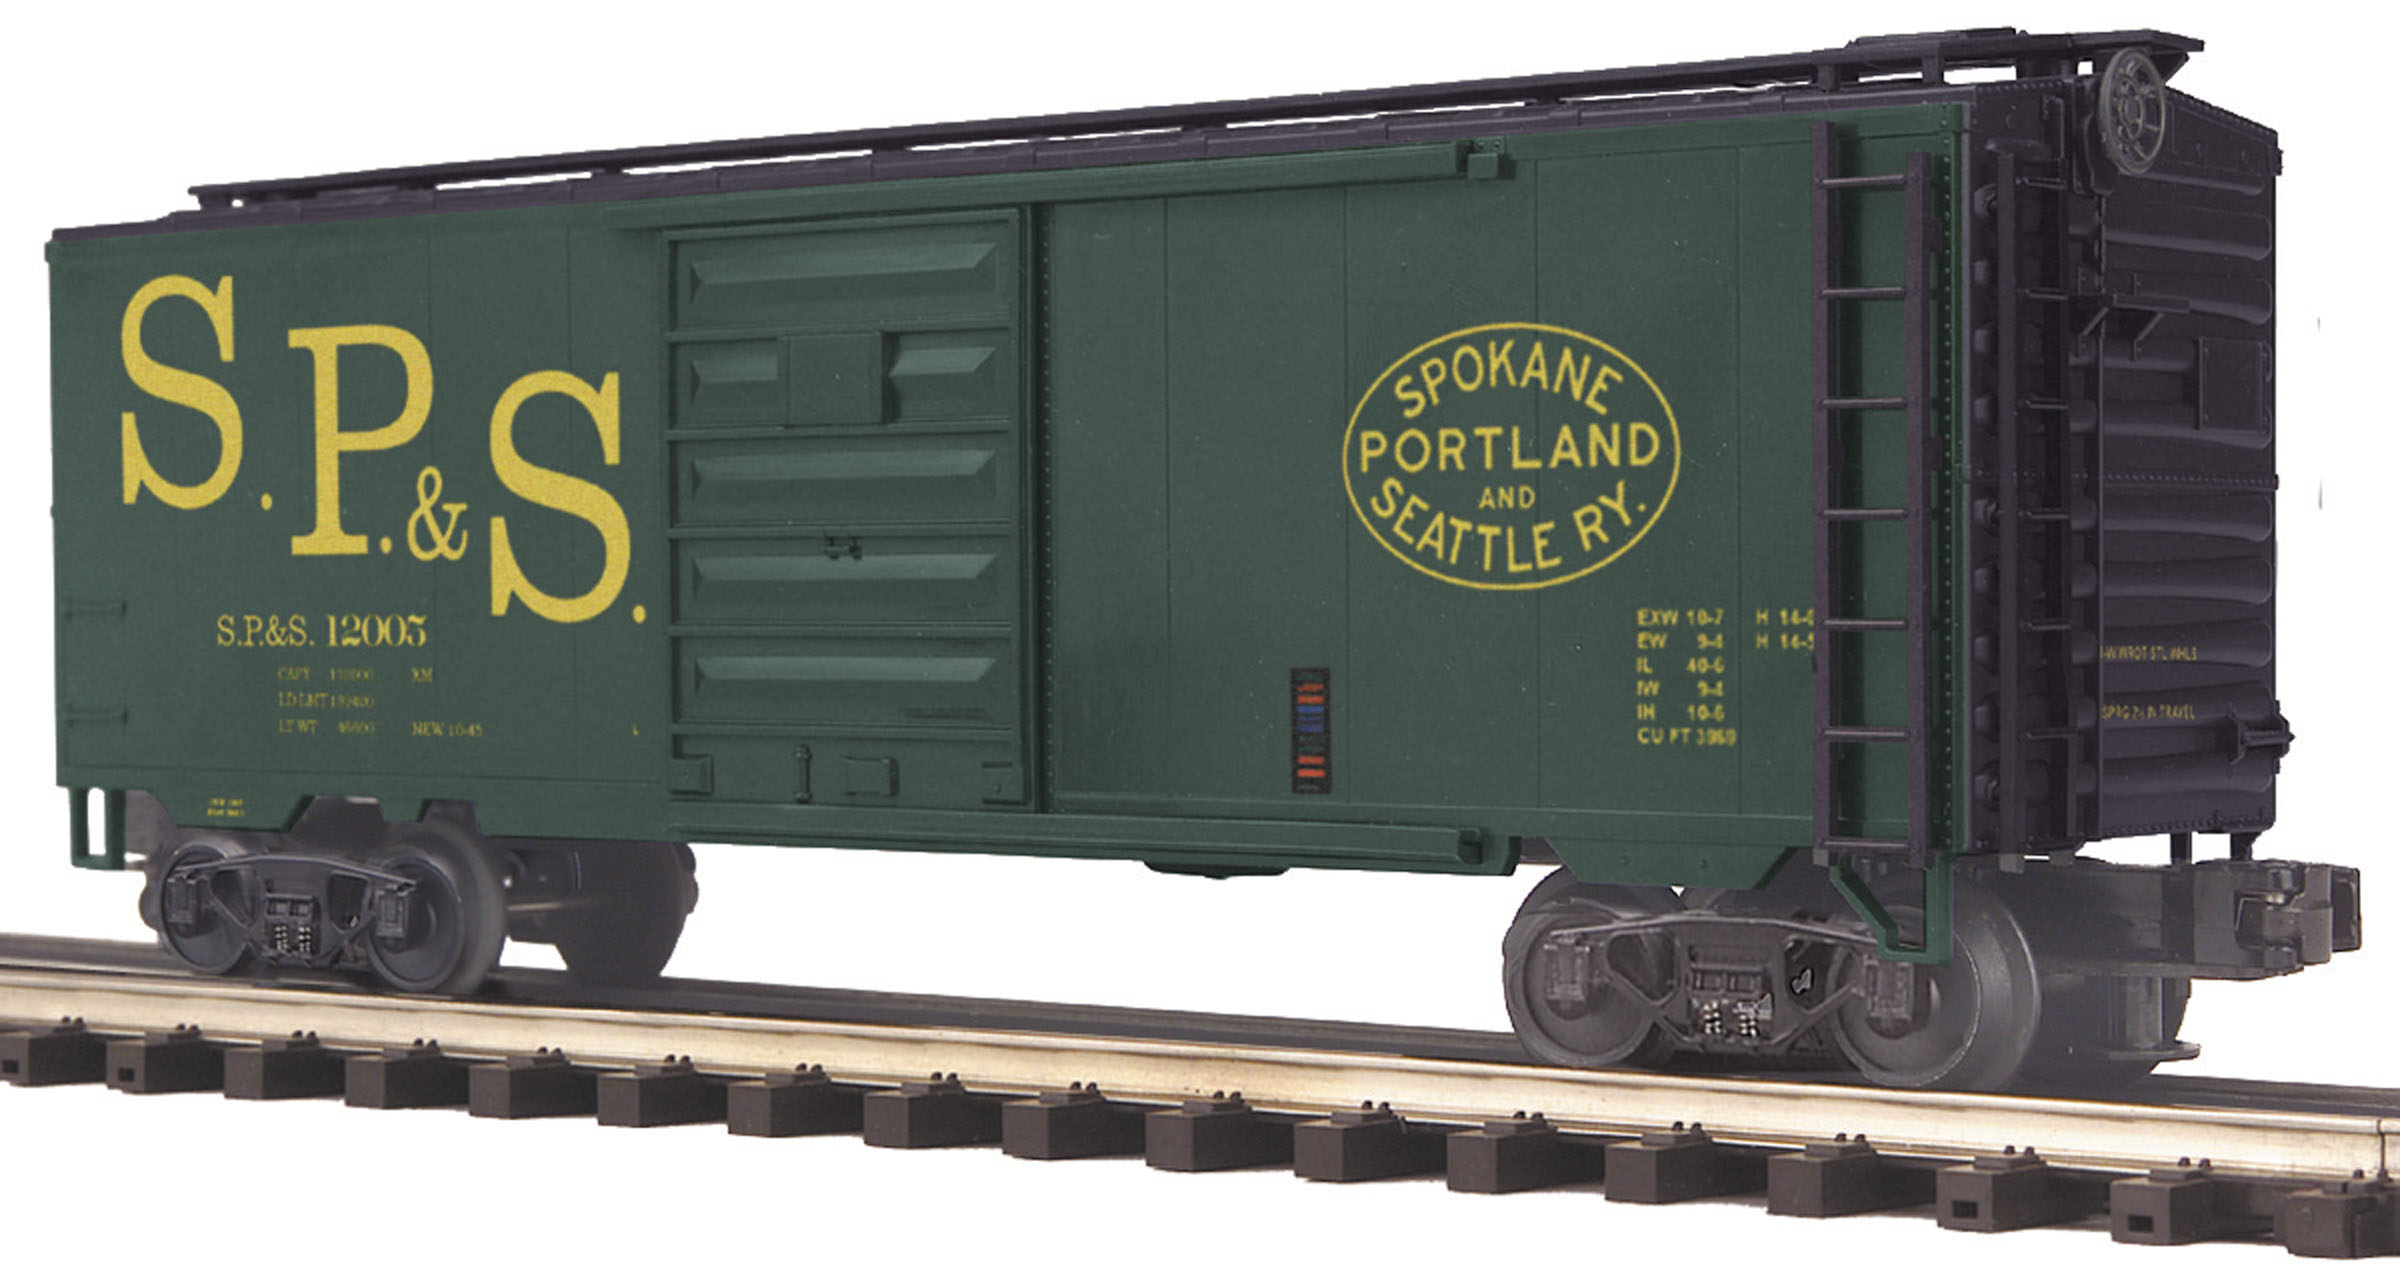 Spokane, Portland & Seattle Box Car image